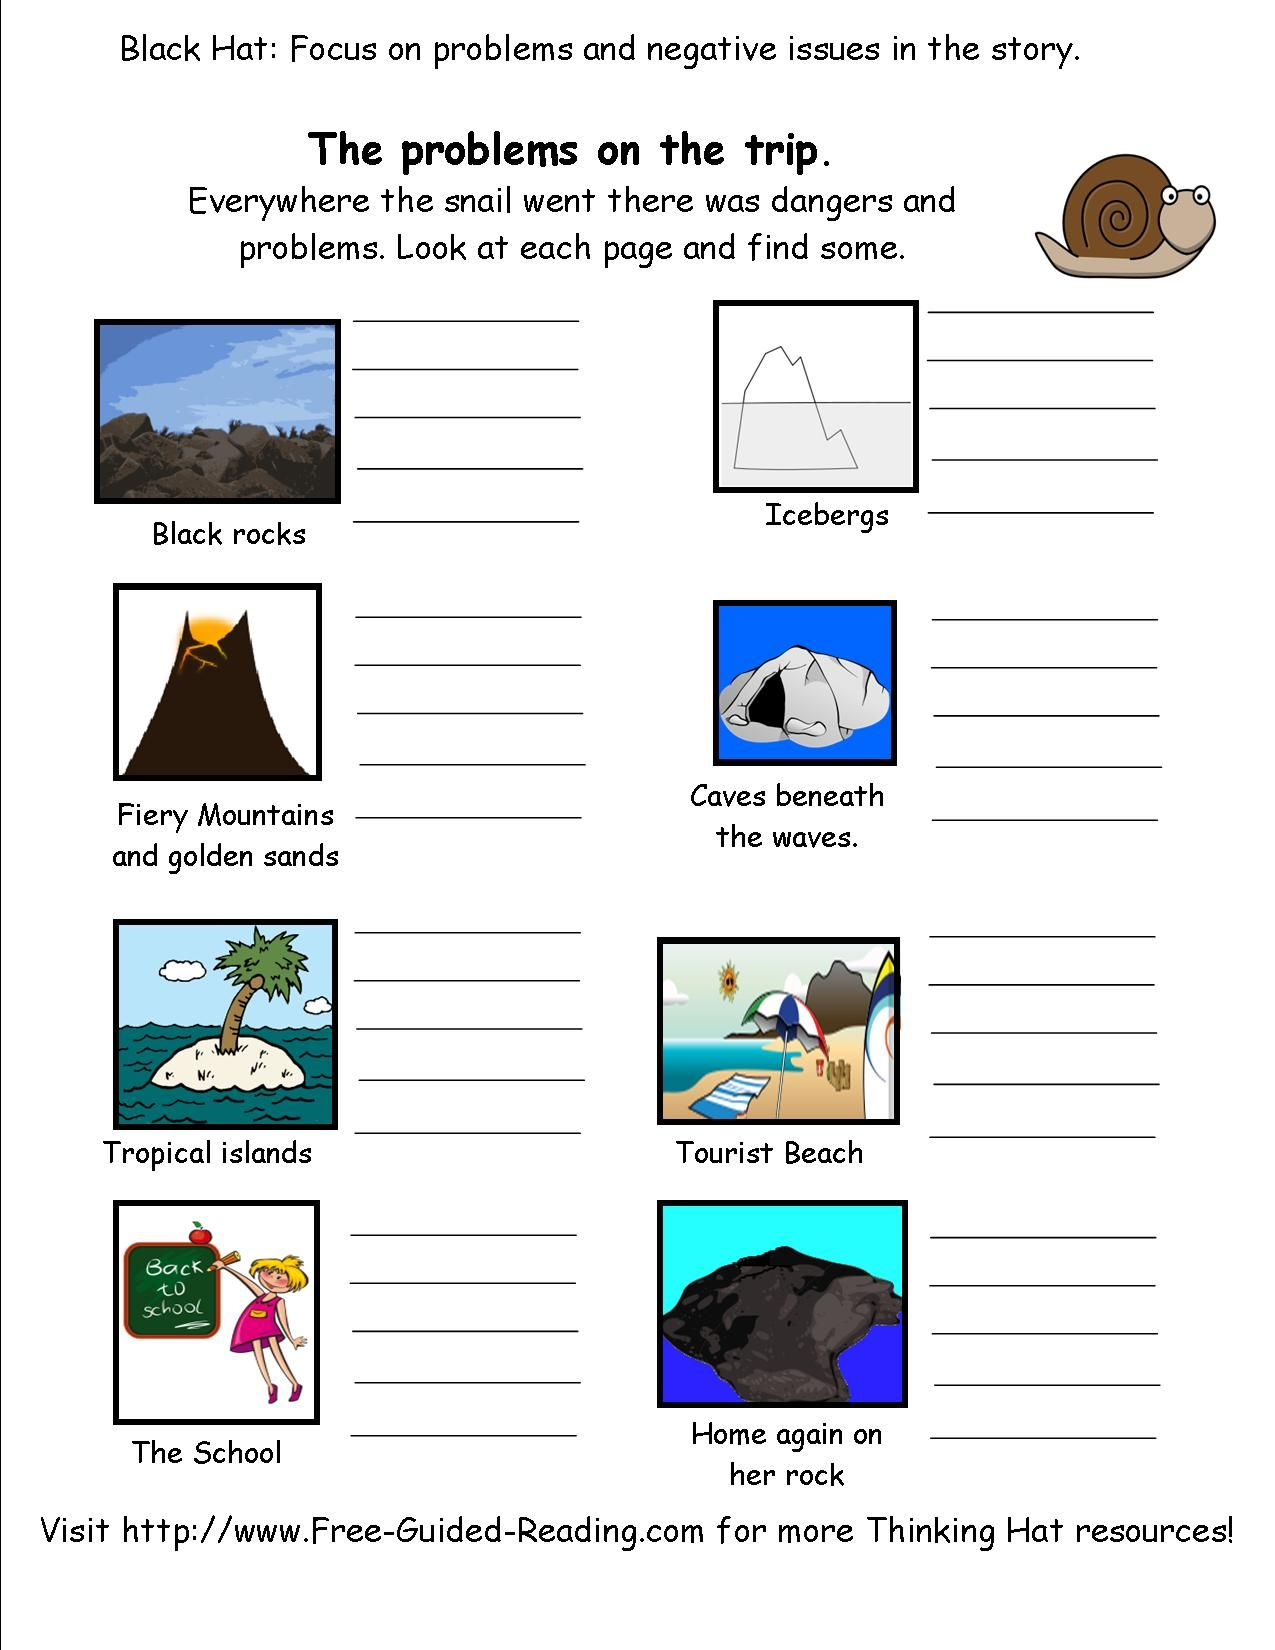 Snail And The Whale Story Activity Worksheets Free Thinking Hat Worksheets For Black Hat